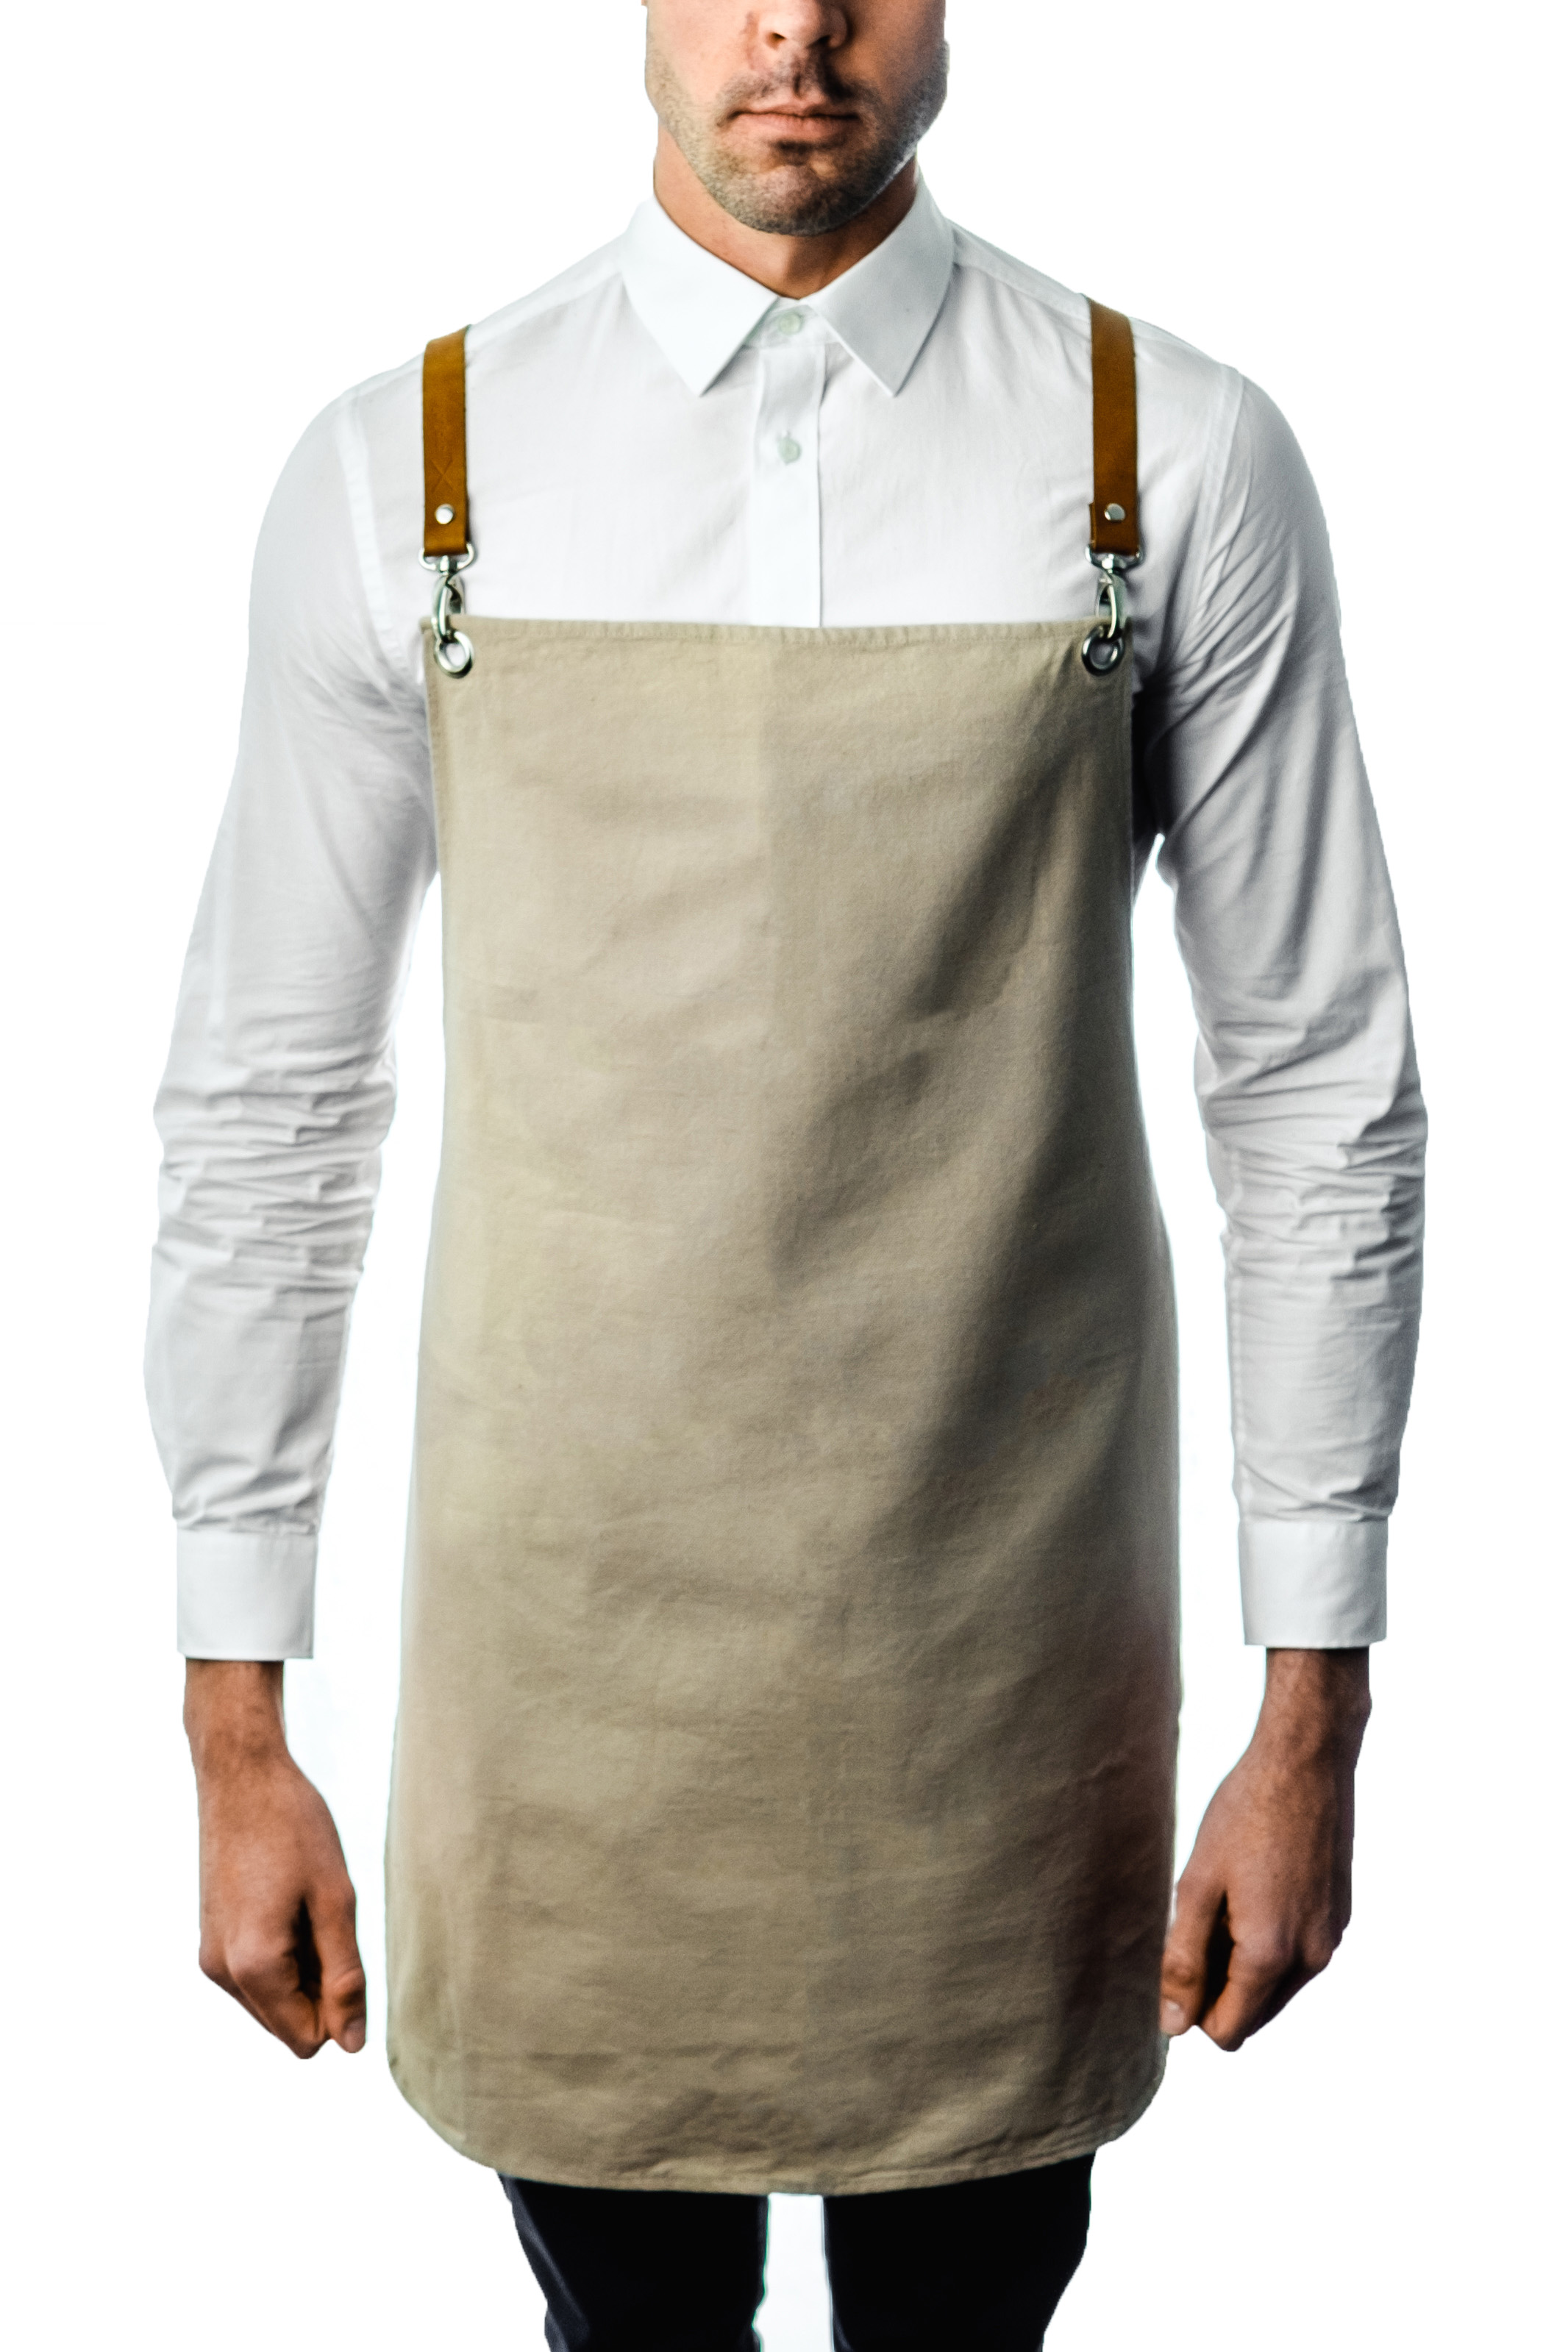 Cotton Canvas Aprons